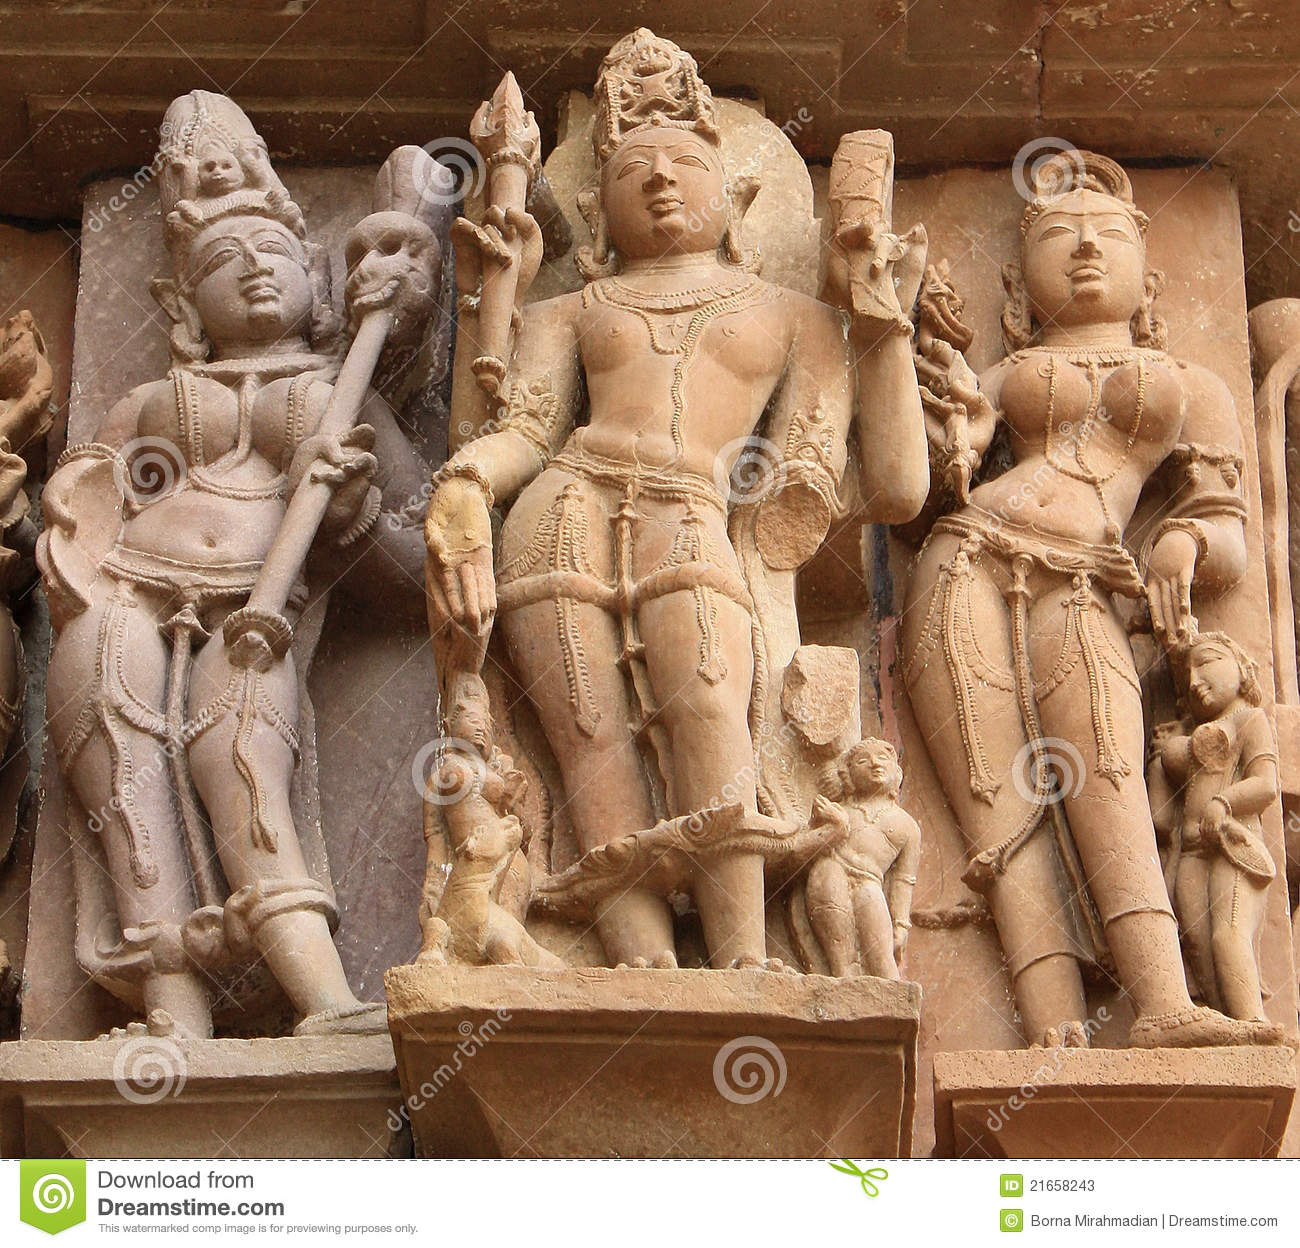 Three statues on the facade of a temple in Khajuraho, India.